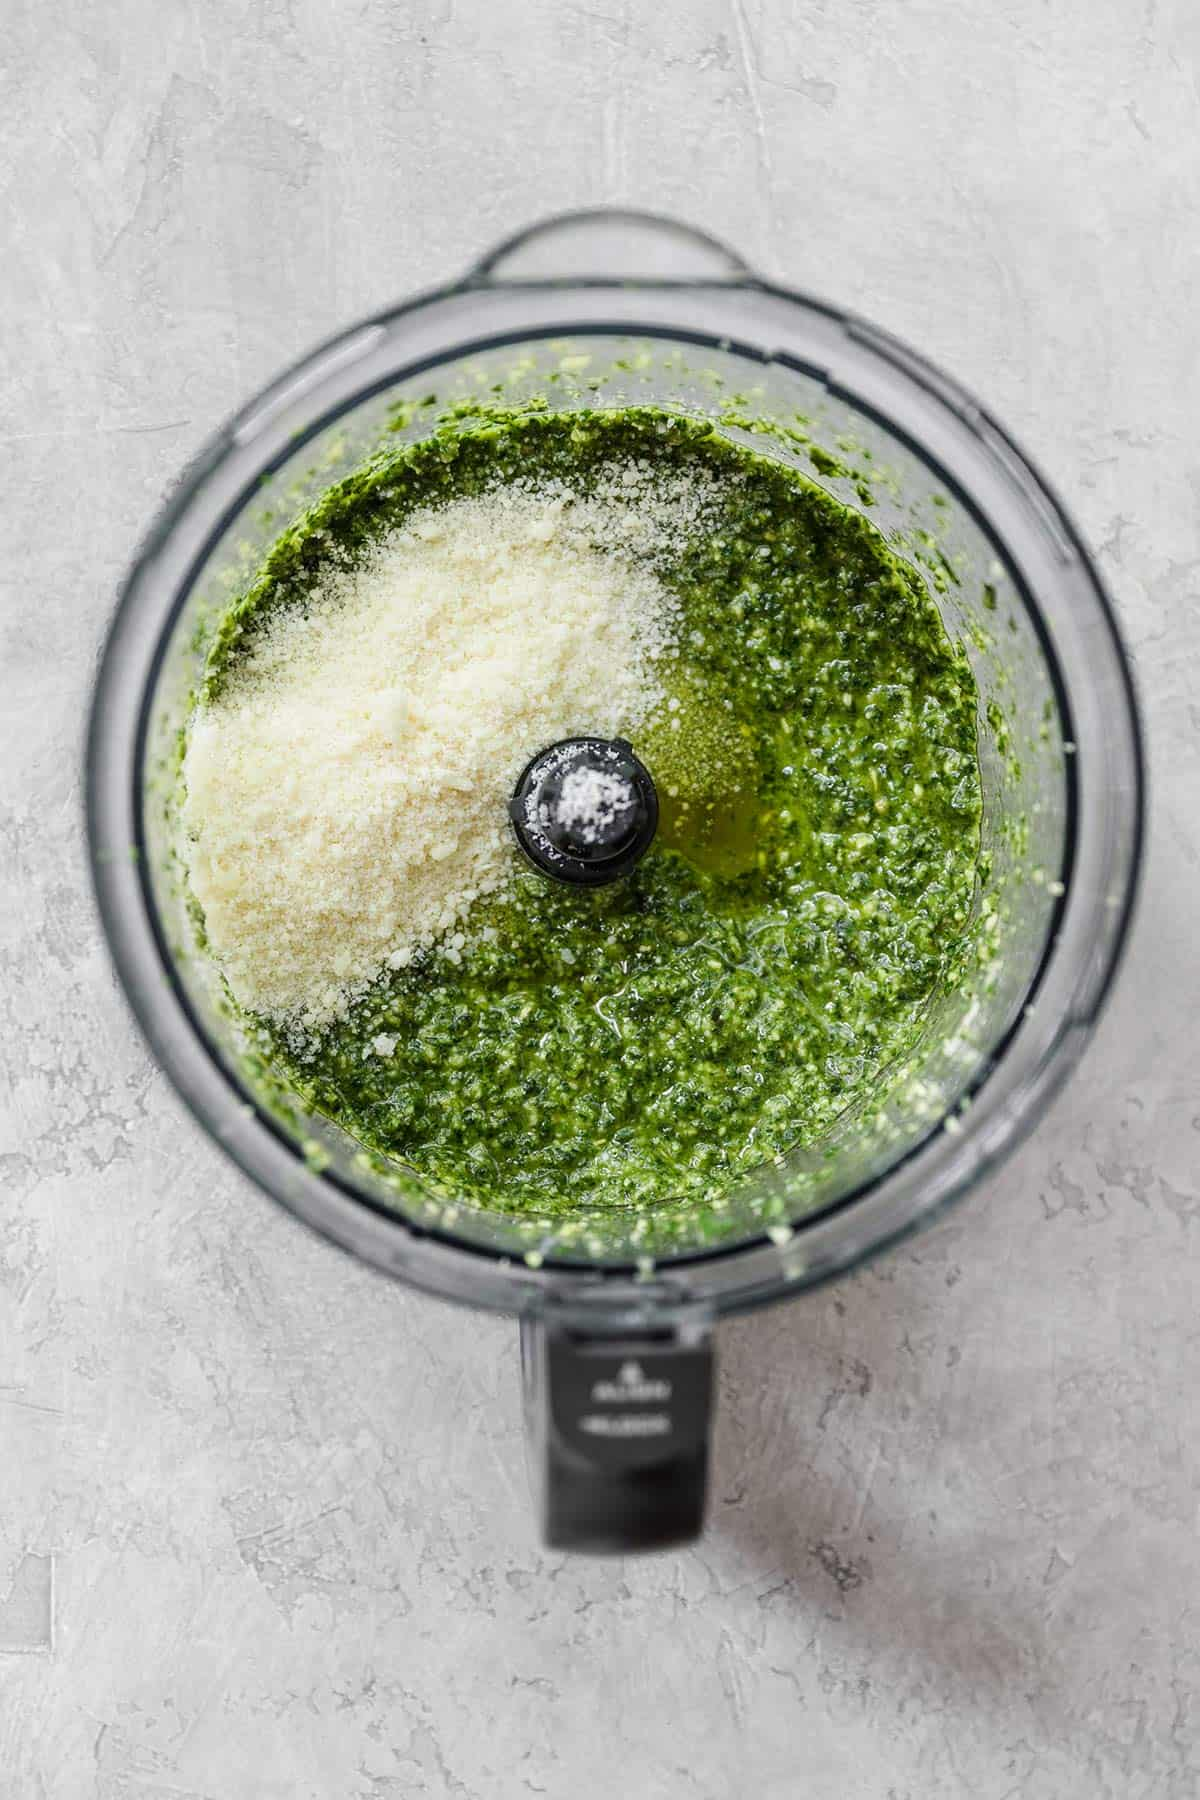 Pesto in a food processor with cheese in the top right section before pulsing.